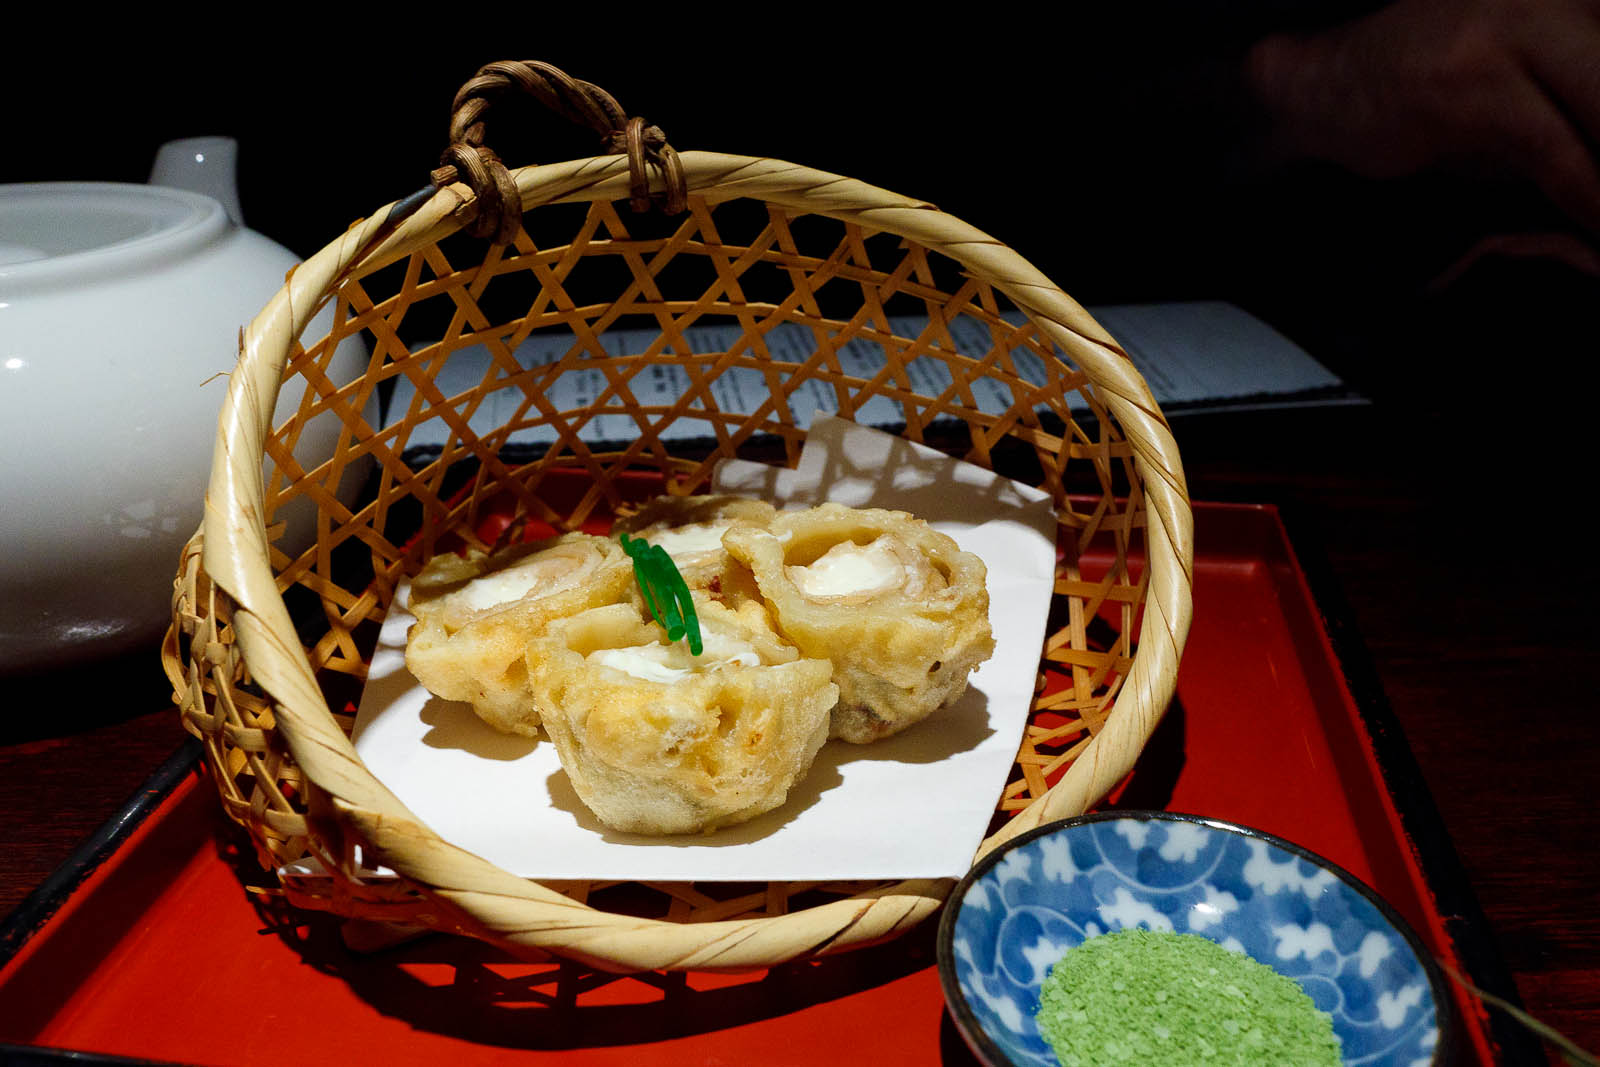 Anago & cream cheese tempura: cream cheese wrapped with soft seawater eel ($9.95)